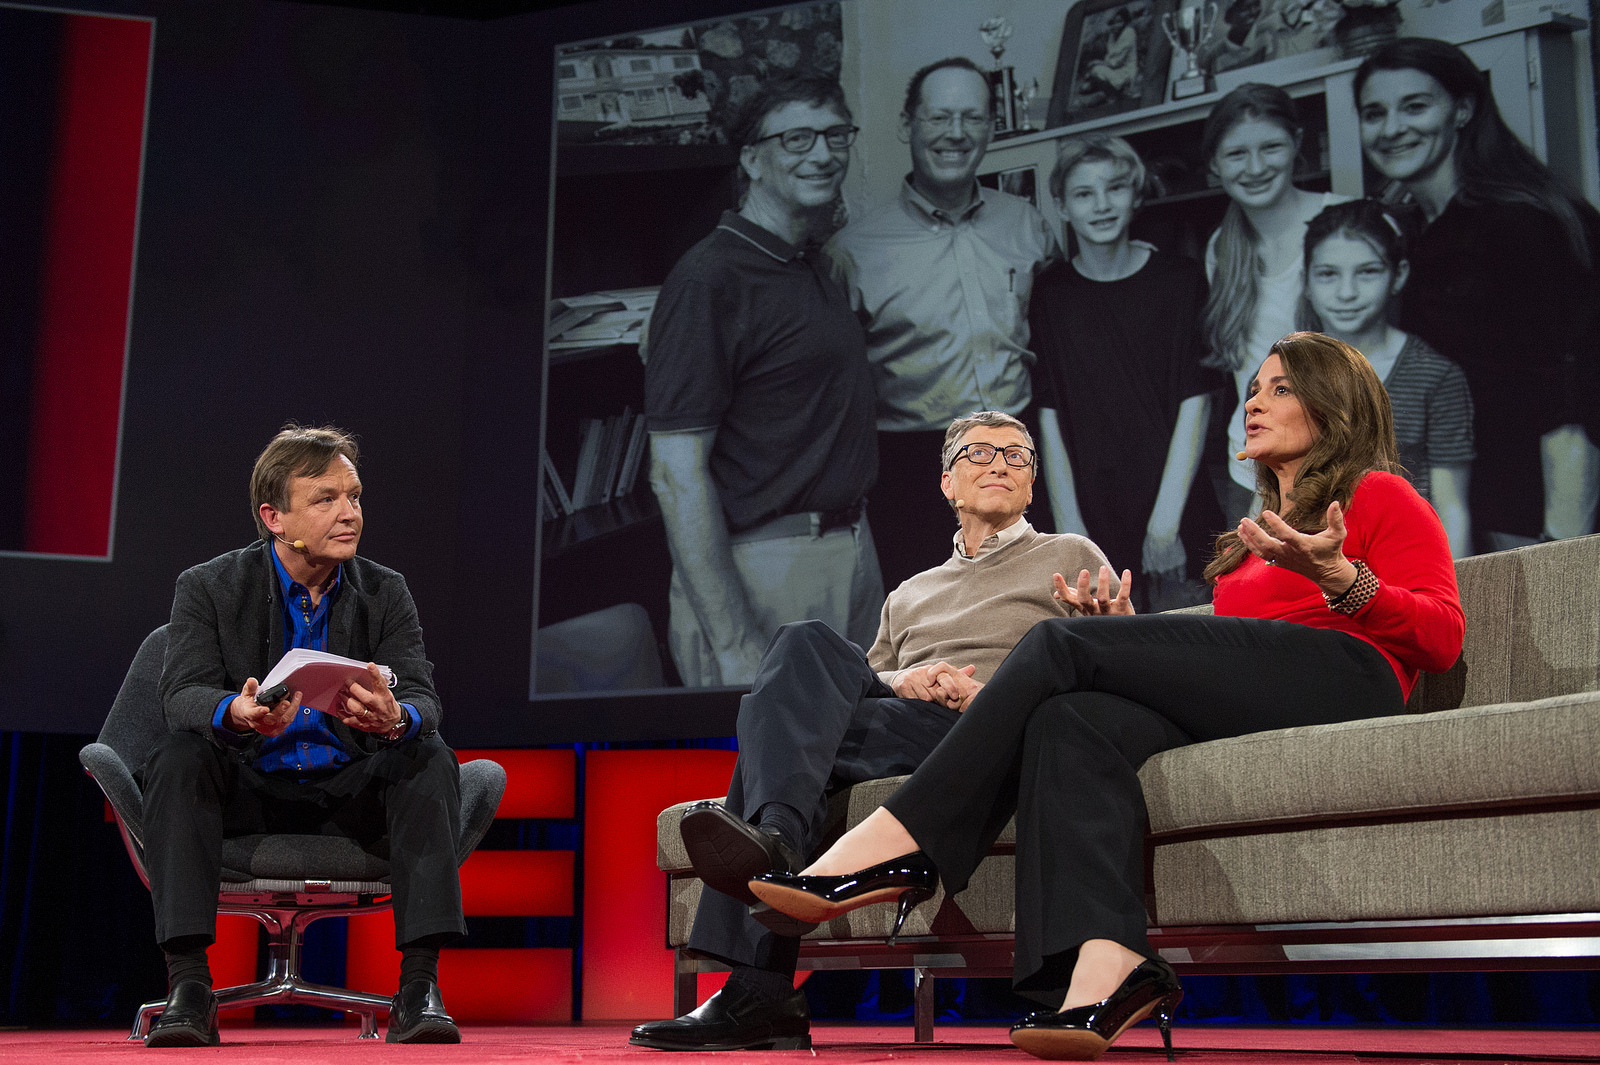 Chris Anderson interviews Bill and Melinda Gates, asking them about their lives as a couple and as parents. Photo: James Duncan Davidson